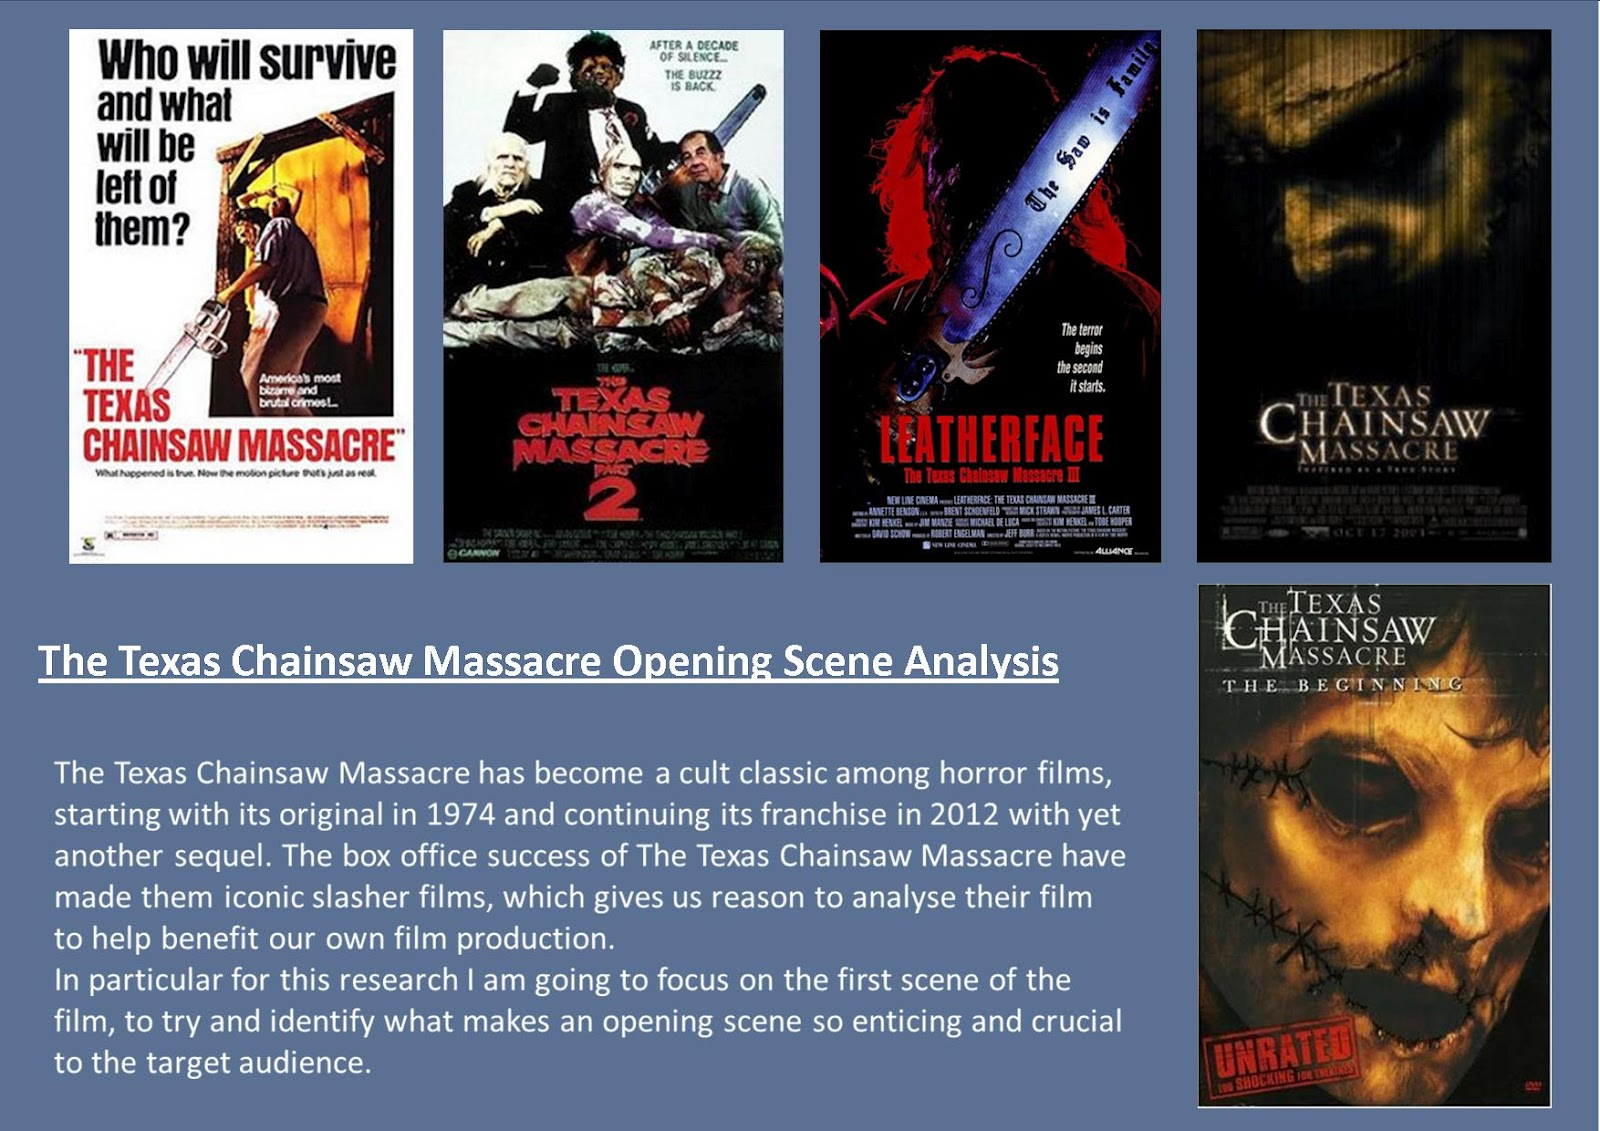 an introduction to the analysis of the texas chainsaw massacre Mr hooper essay examples an introduction to the analysis of the anti-transcendentalists an analysis of the movie the texas chainsaw massacre by tobe hooper.